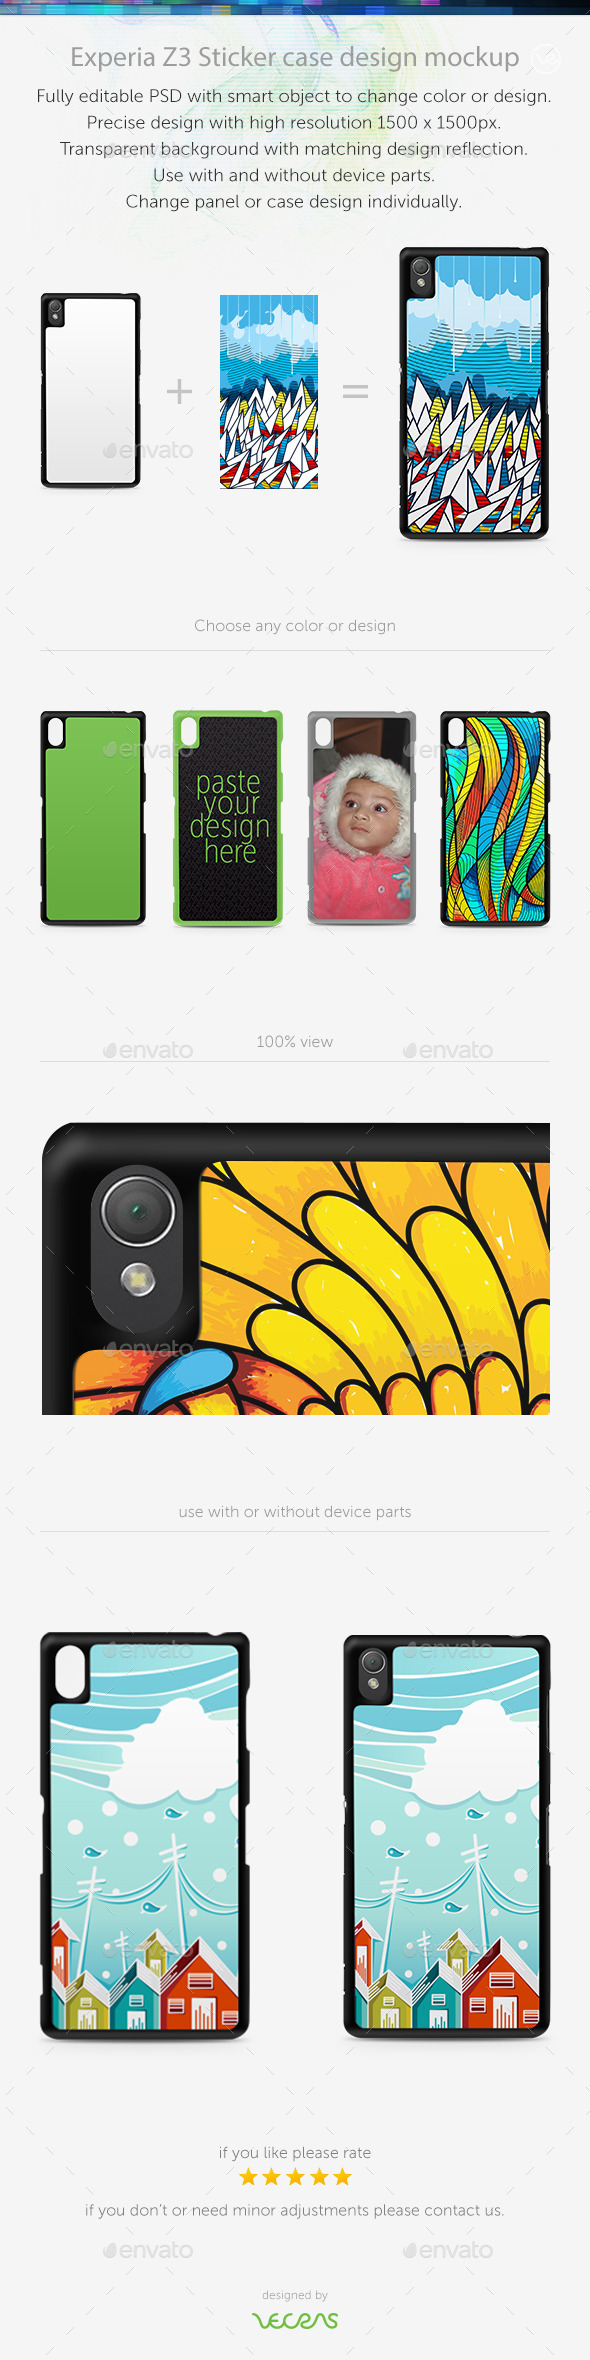 GraphicRiver Experia Z3 Sticker Case Design Mockup 10485739